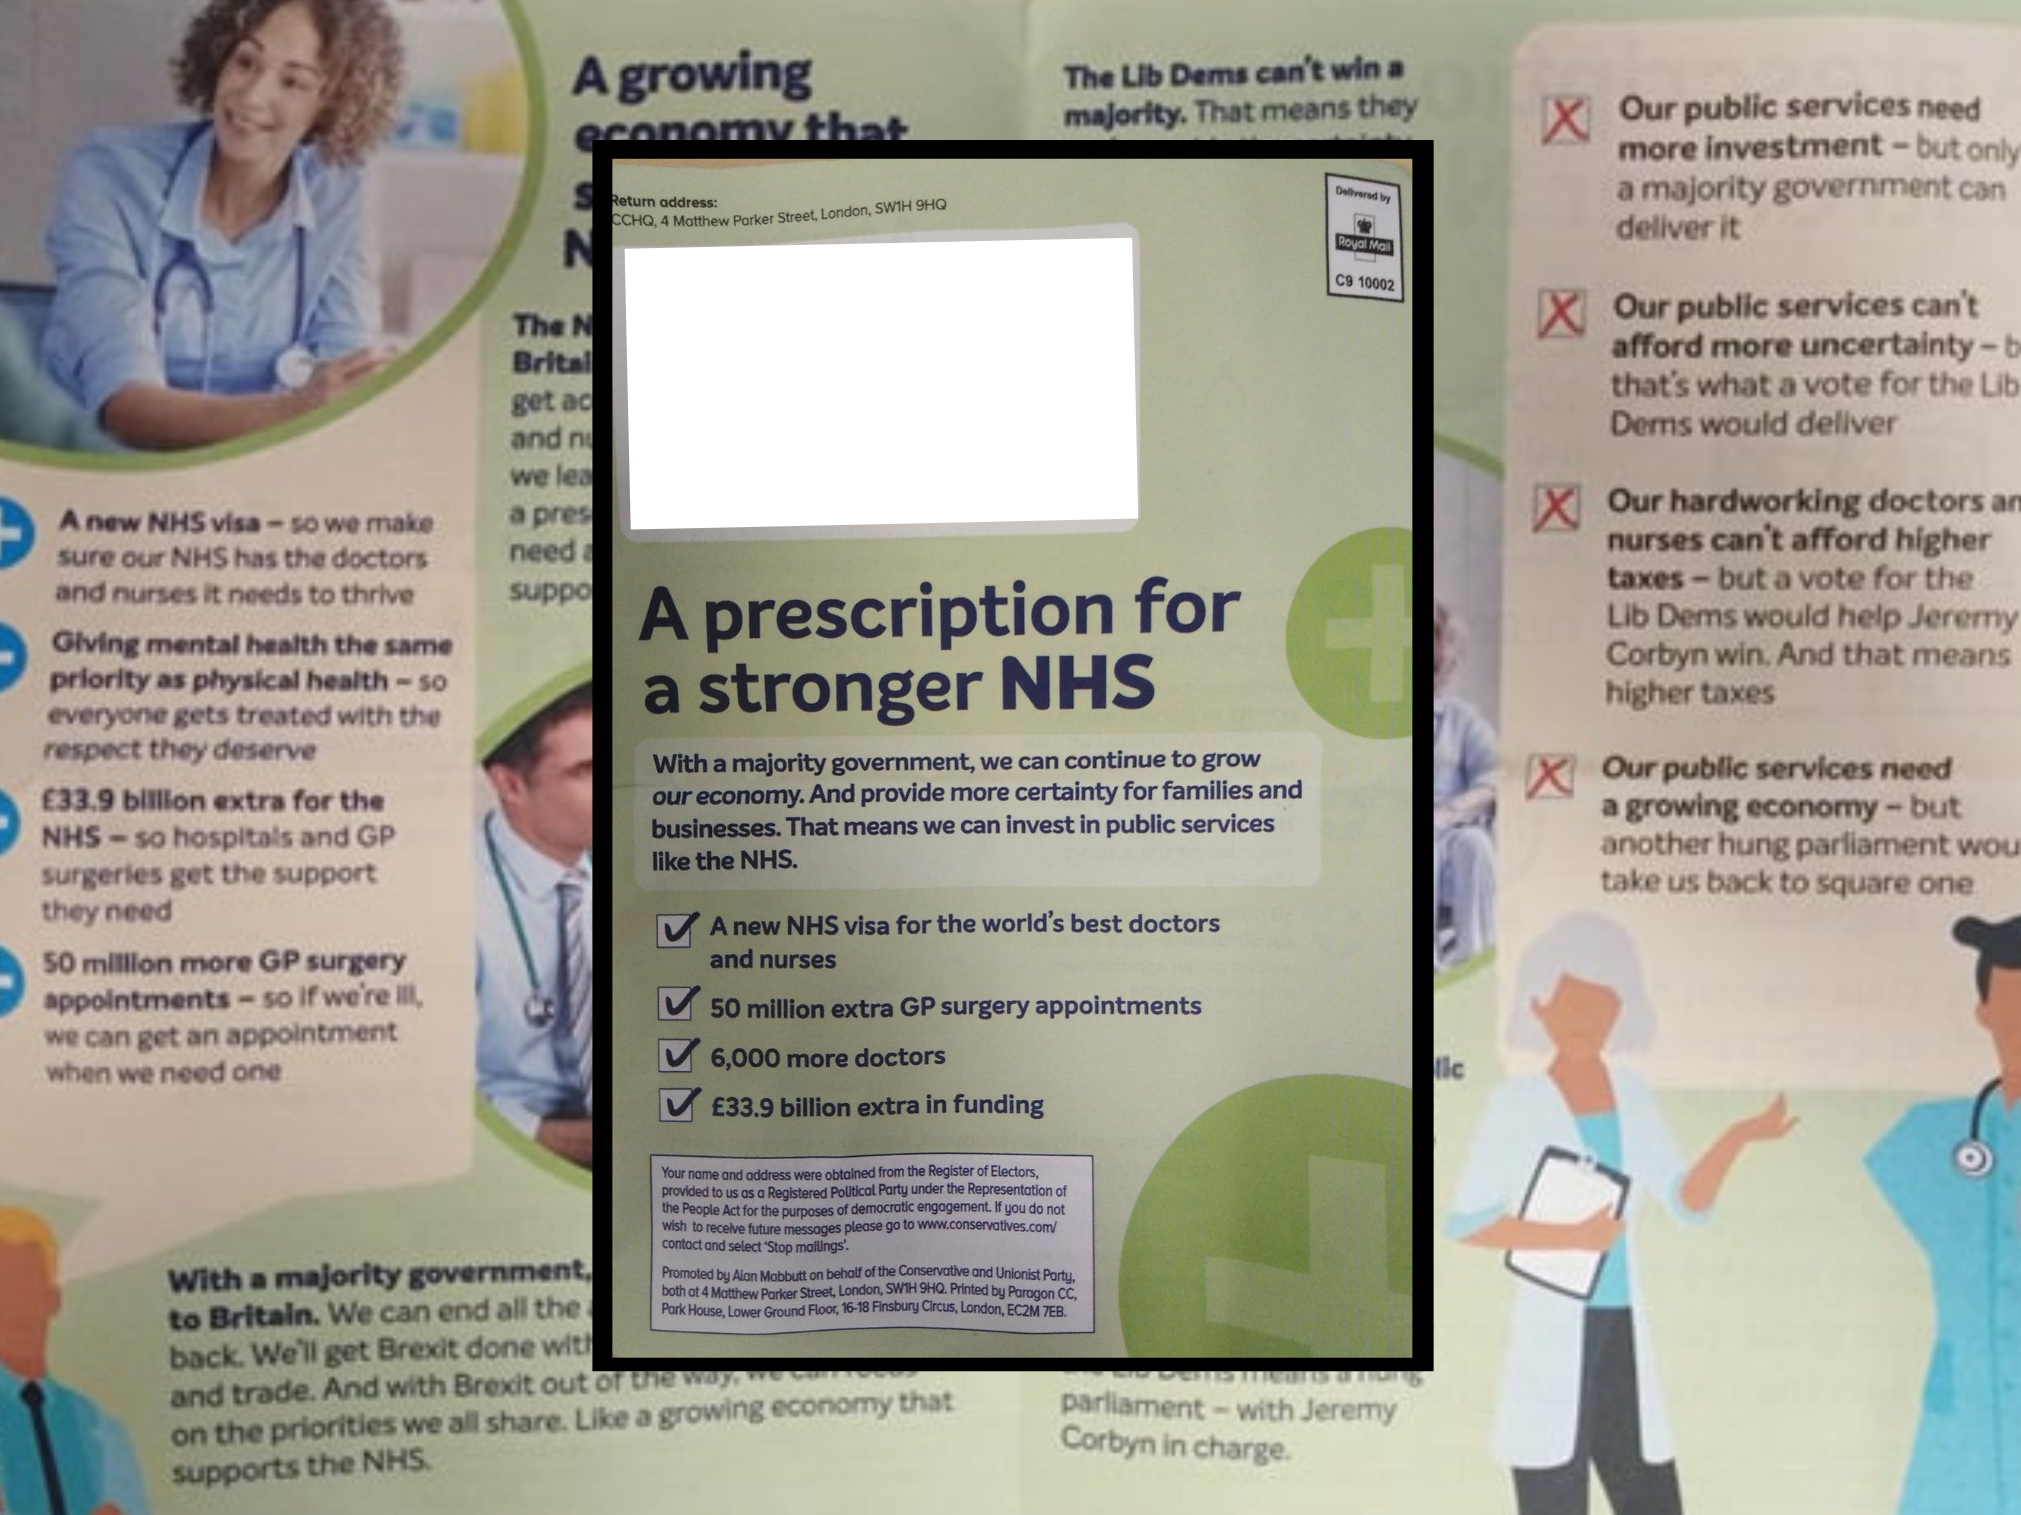 Tories produce 'deeply dishonest' election leaflet imitating NHS prescription with barely visible mention of party name